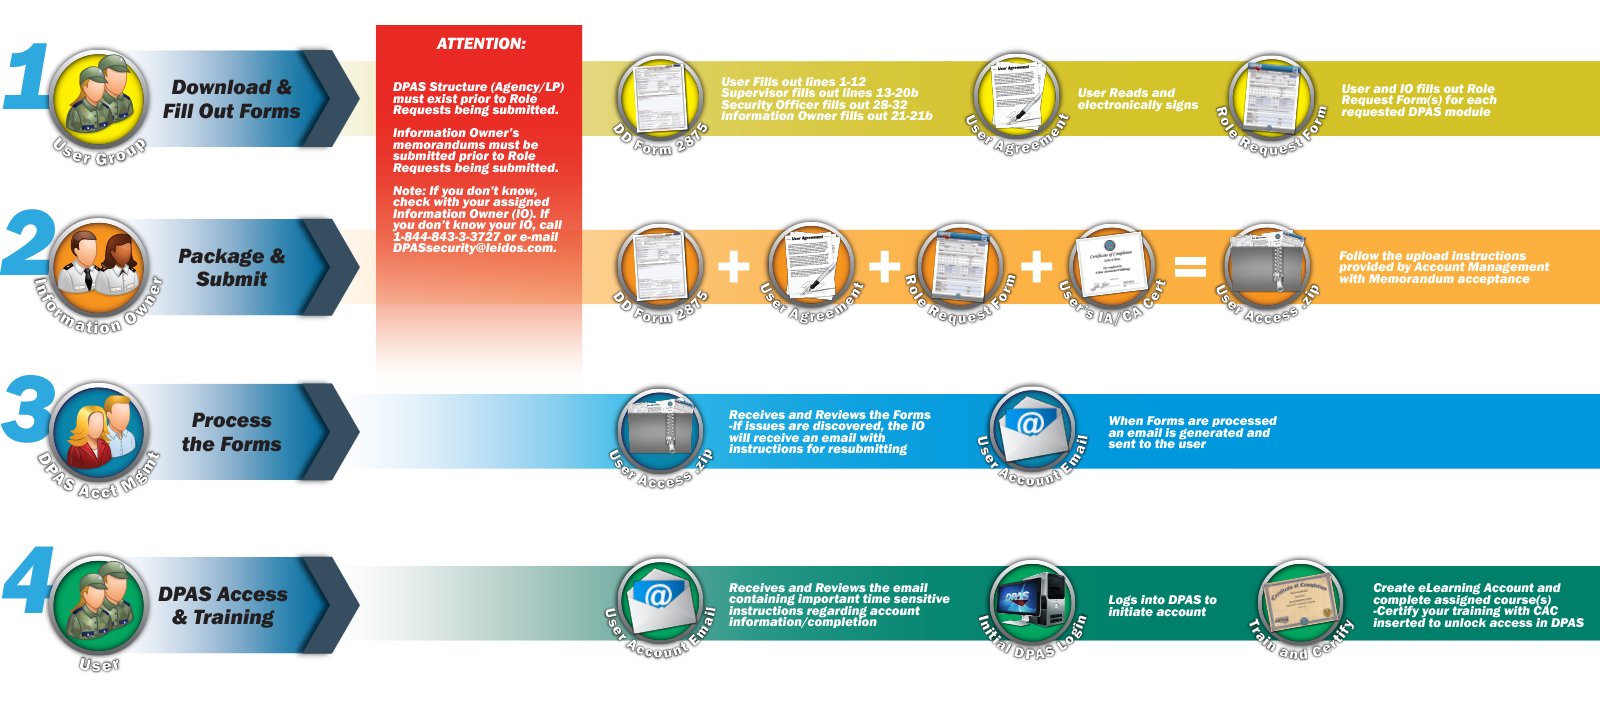 Dpas Access Overview Process Flow Diagram Training Showing Of Submitting Paperwork For